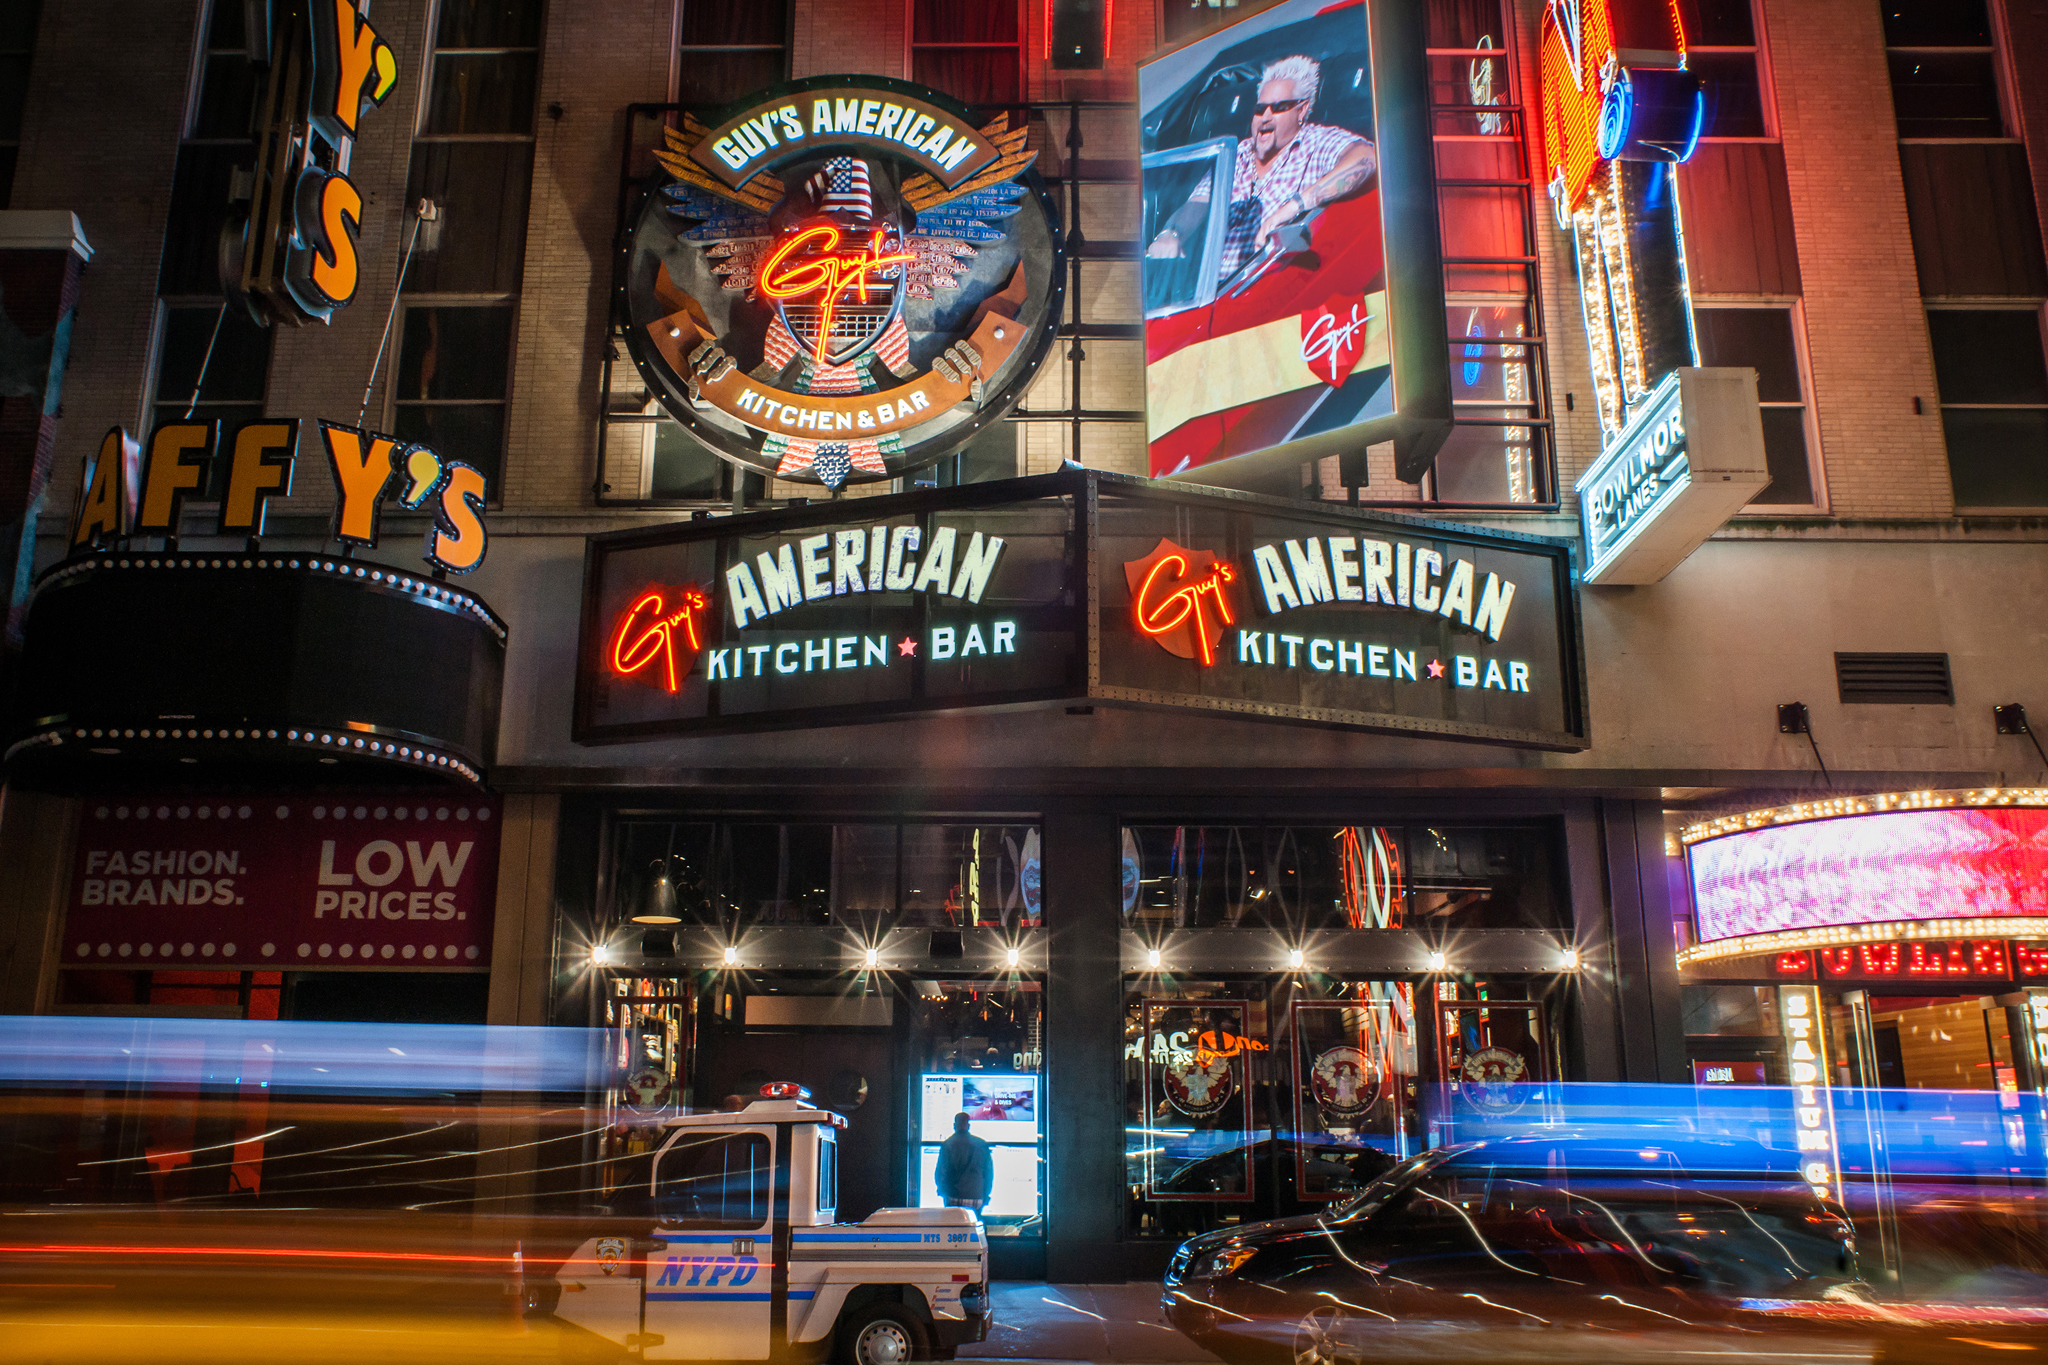 Guy 39 s american kitchen and bar restaurants in midtown for American cuisine in nyc